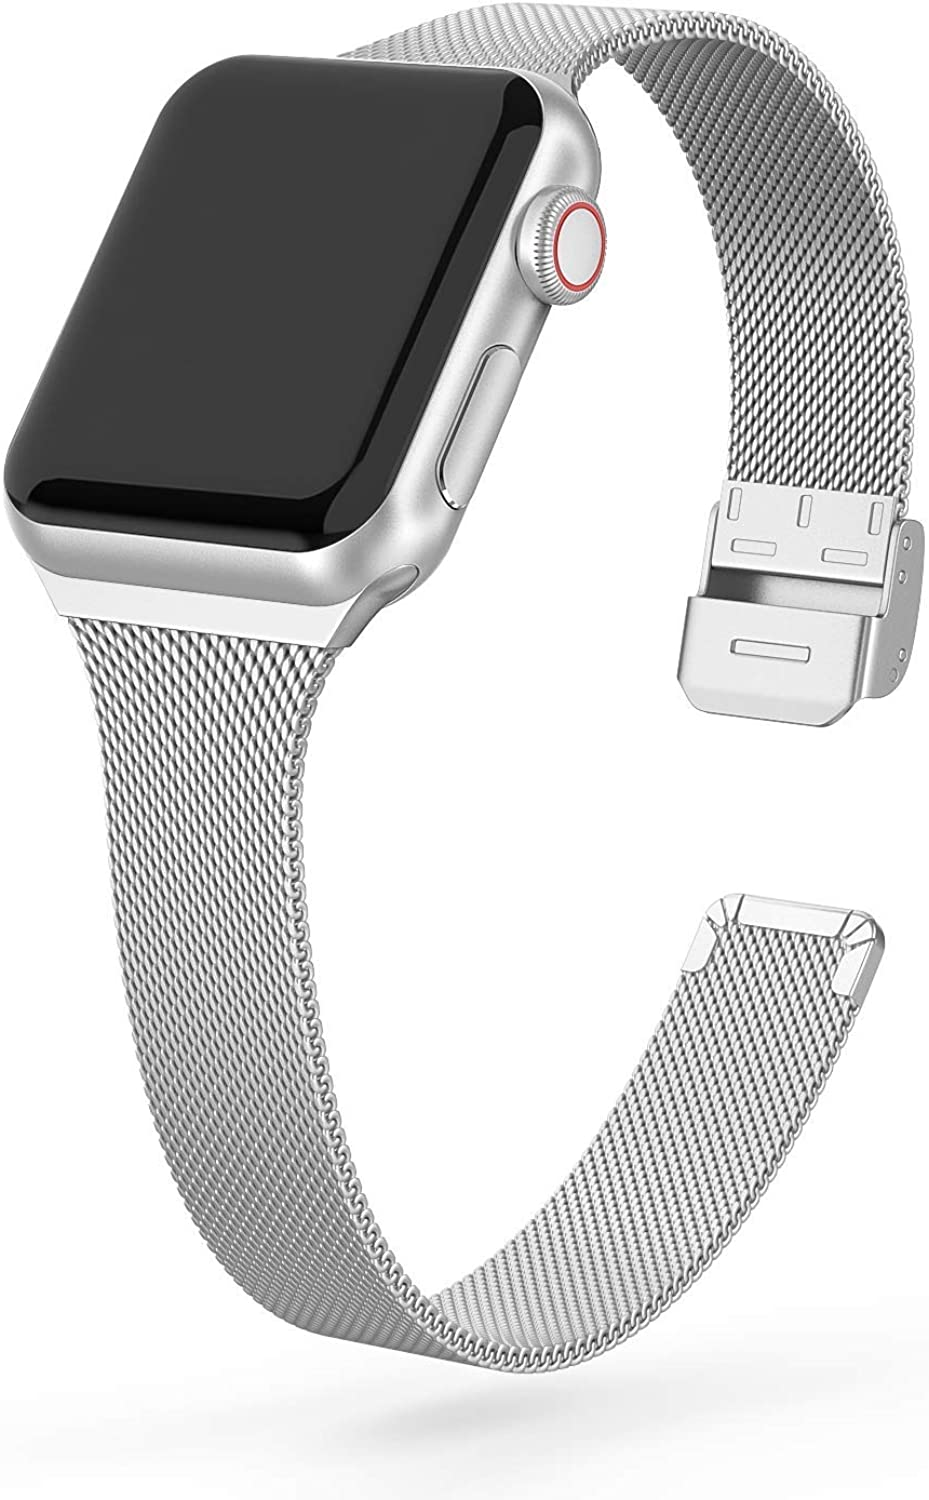 Boyear Compatible Apple Watch Band 38mm 40mm 42mm 44mm , Soft Stainless Steel Mesh Band Replacement Mesh Strap for iWatch Series 5/4/3/2/1